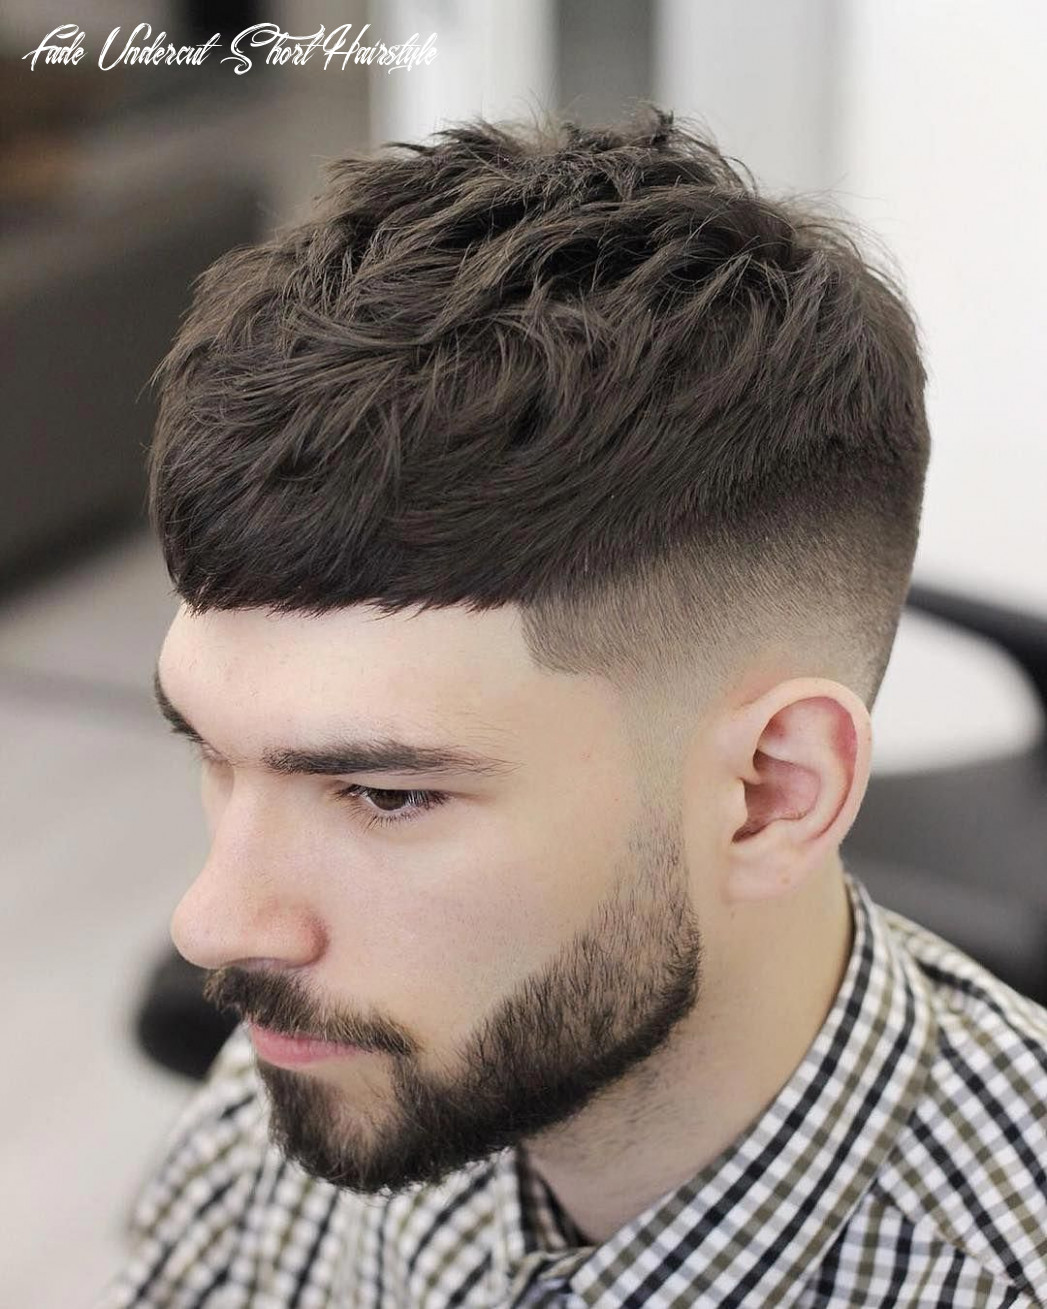 Excellent short hairstyles for men | mens hairstyles short, short